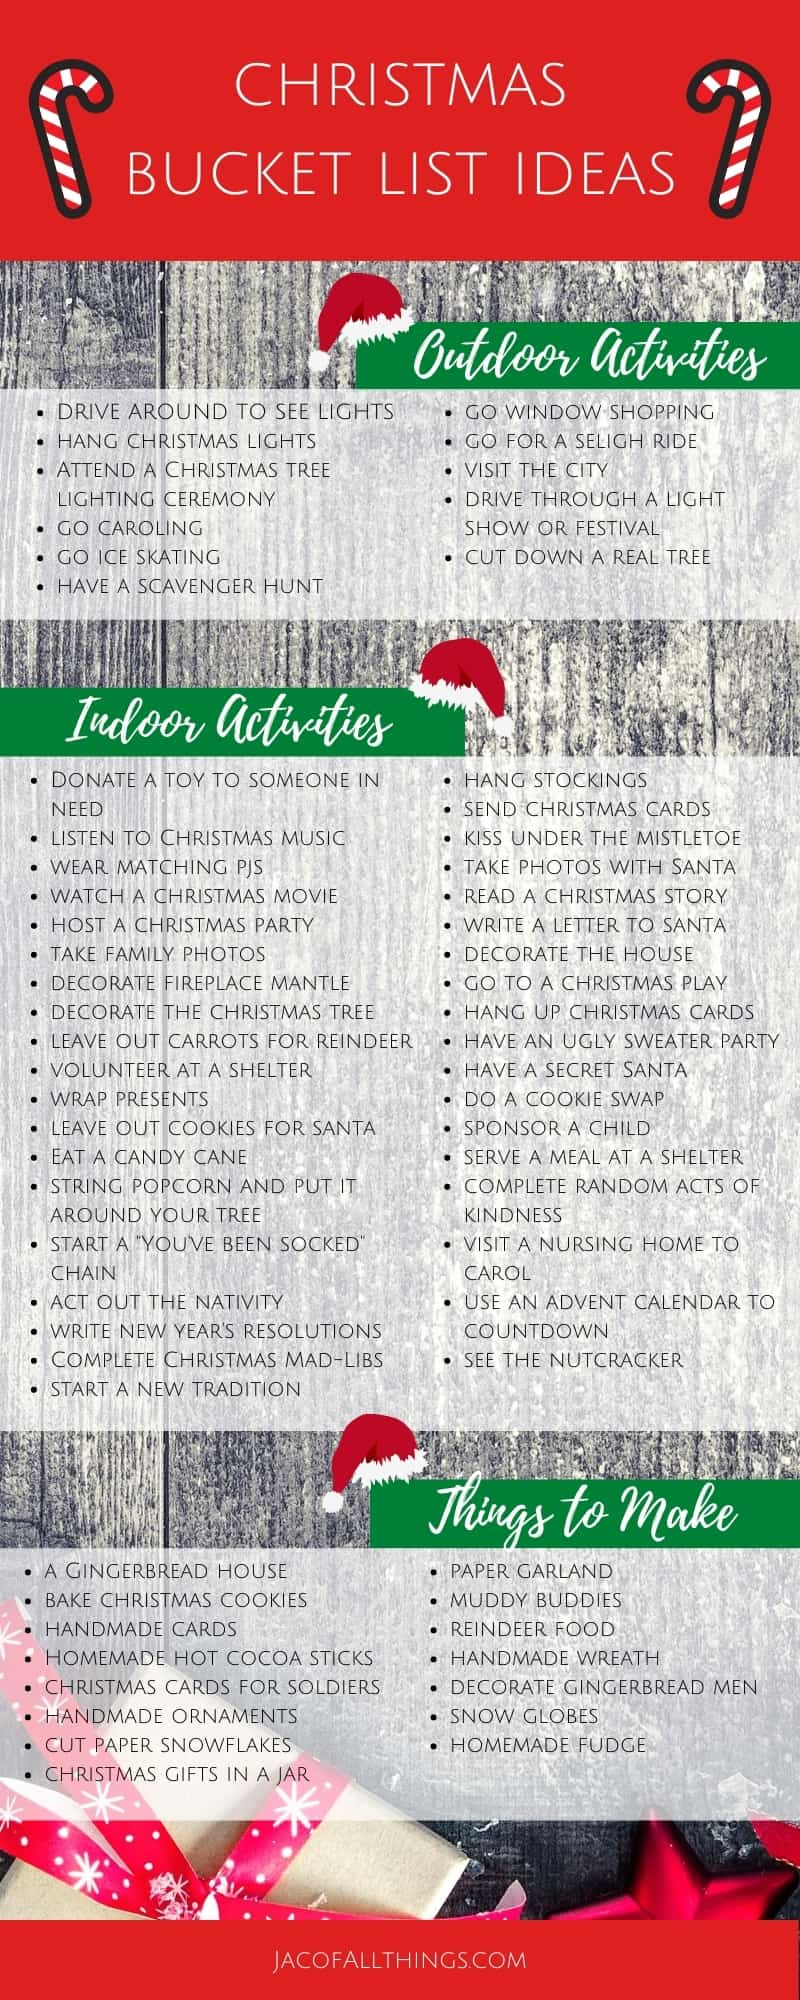 This holiday season, complete a Christmas Bucket List! Make the most of this Christmas with a fun list of activities to do and things to make! Perfect for the whole family to enjoy and create new lasting memories.